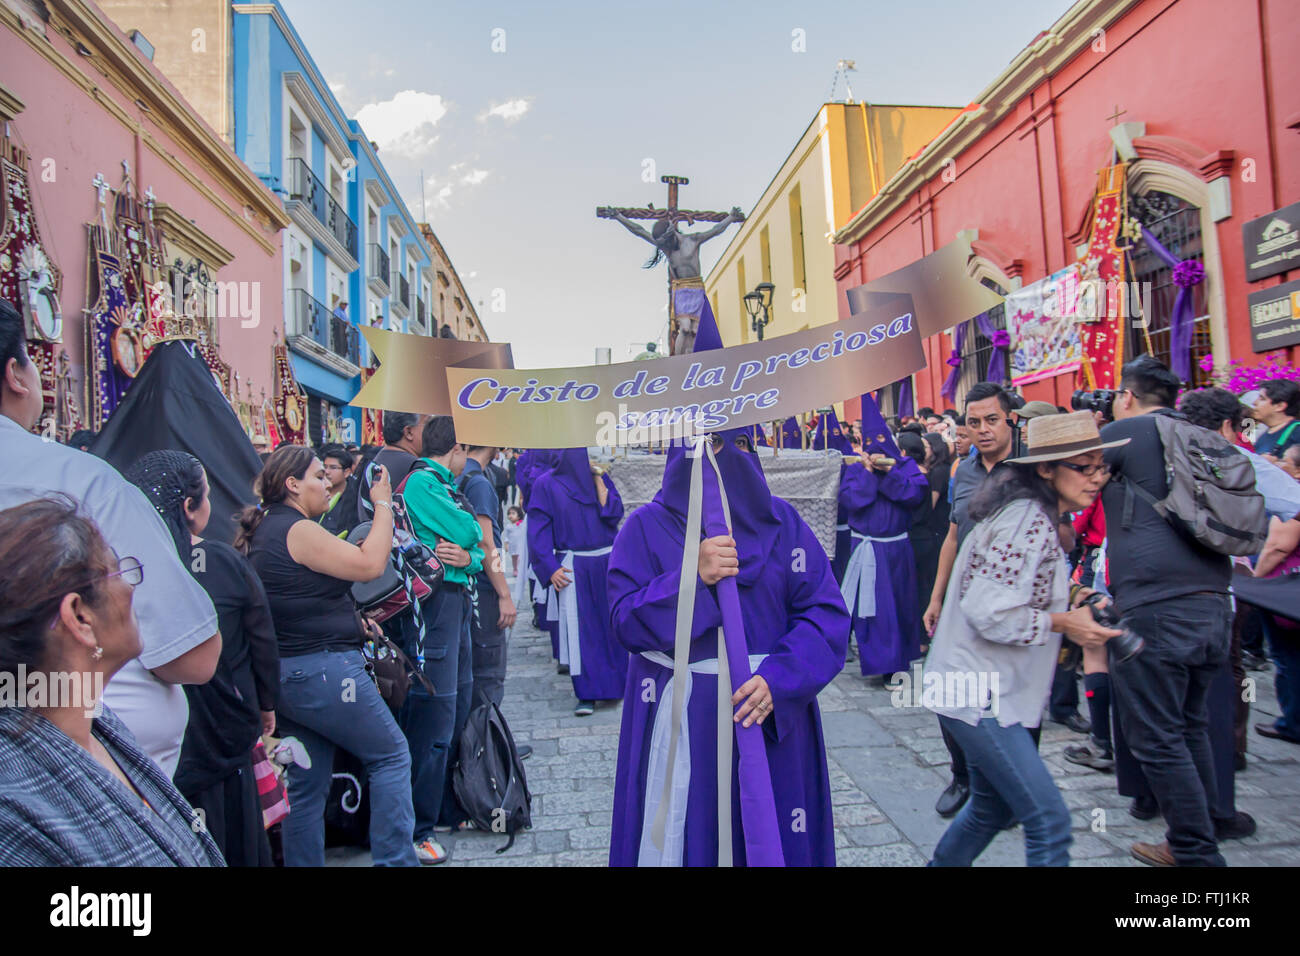 People at the Holy Friday procession in Oaxaca, Mexico. The placard says 'Christ of the precious blood.' - Stock Image